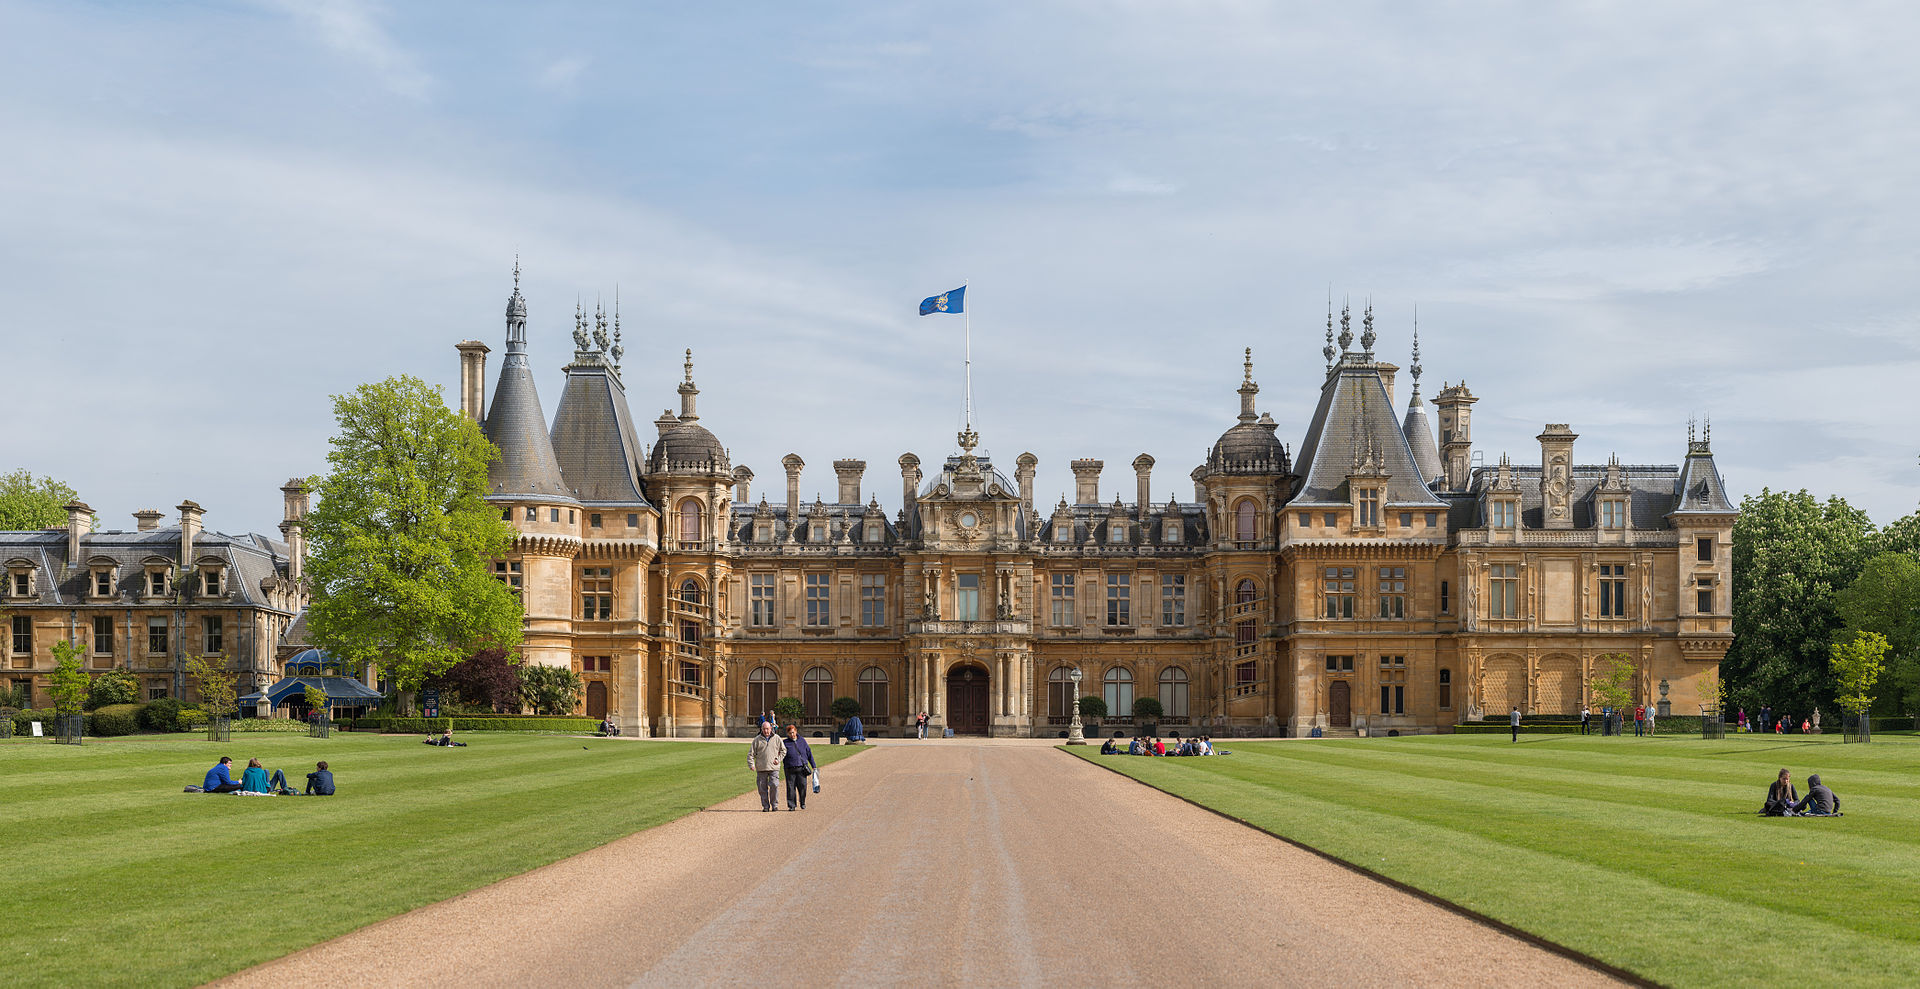 Great British Houses Waddesdon Manor The House Built By The Rothschild Banking Dynasty